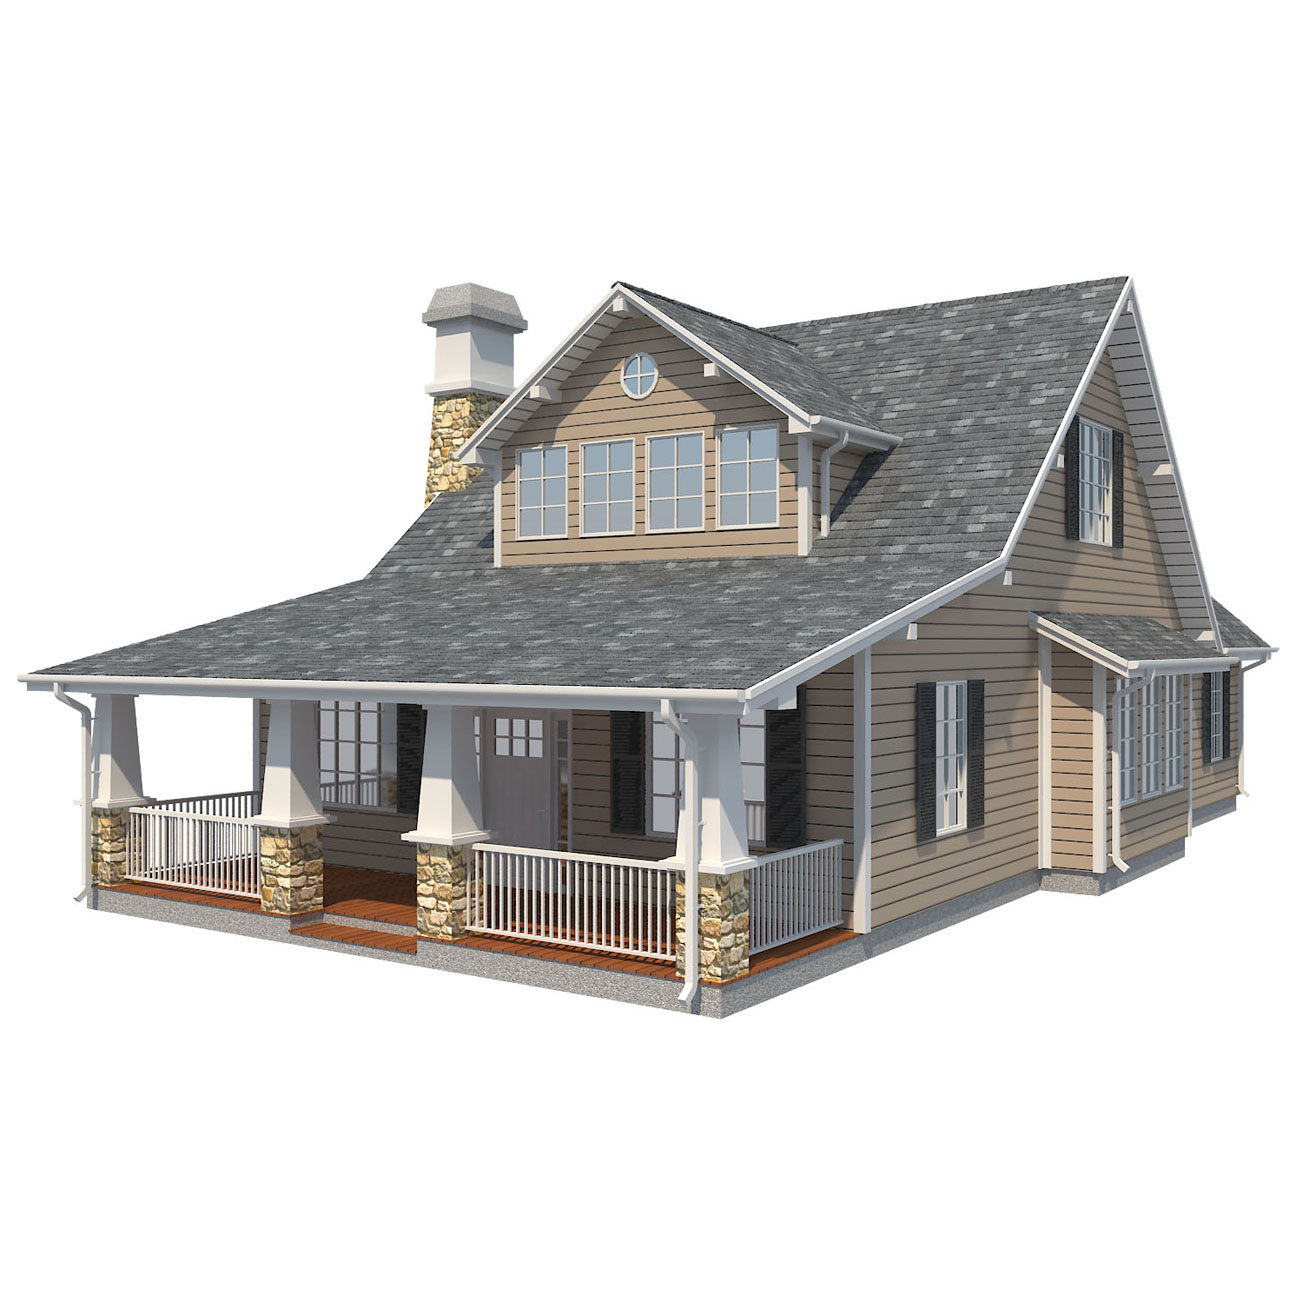 family suburban house 3d model 3ds fbx obj max ds max plugin 270257